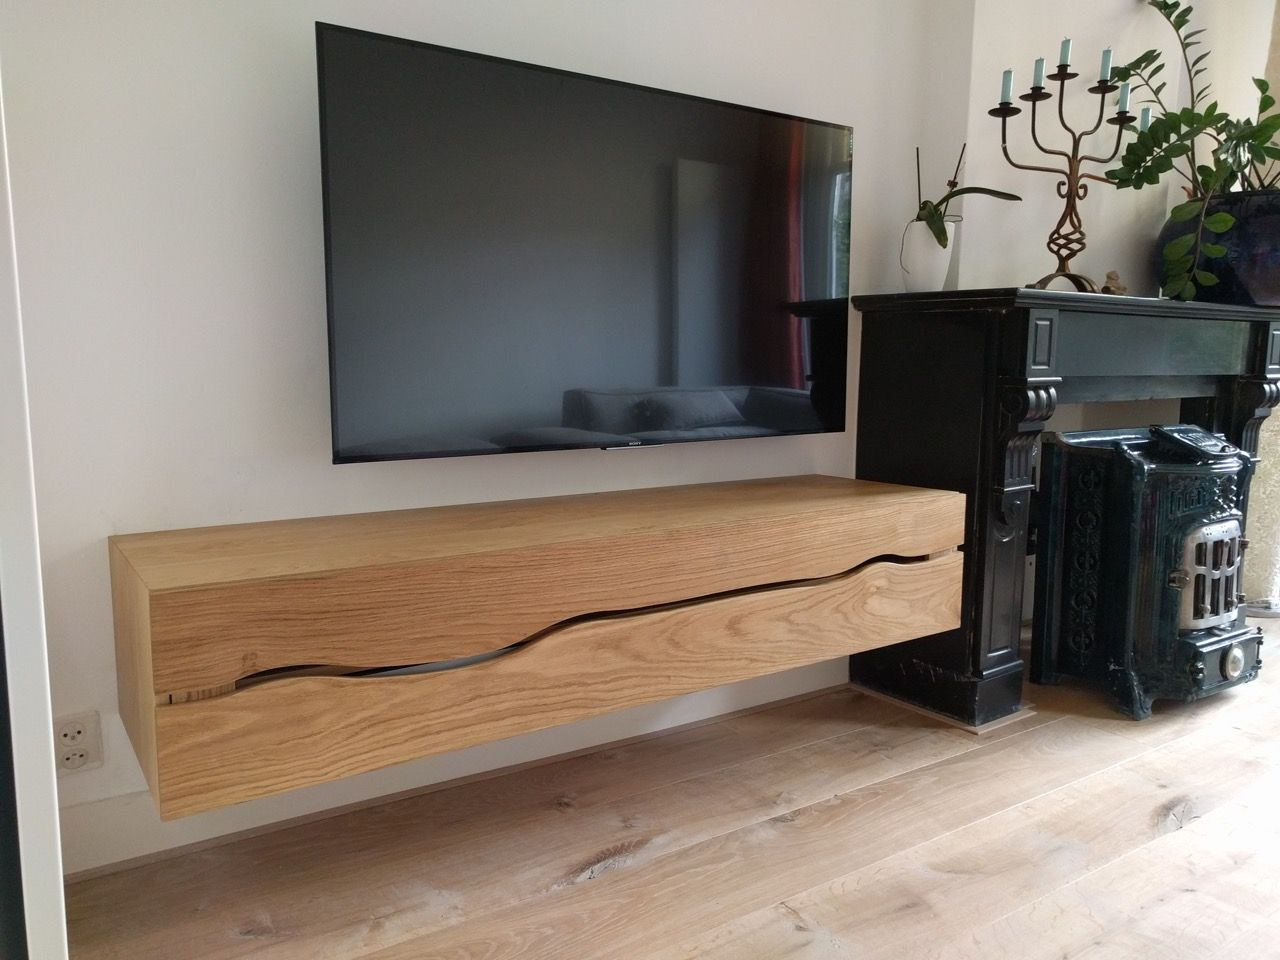 Tv Kasten Ikea Tv-meubel, Dressoir, Wandkast Of Buffet. Mooi Elegant